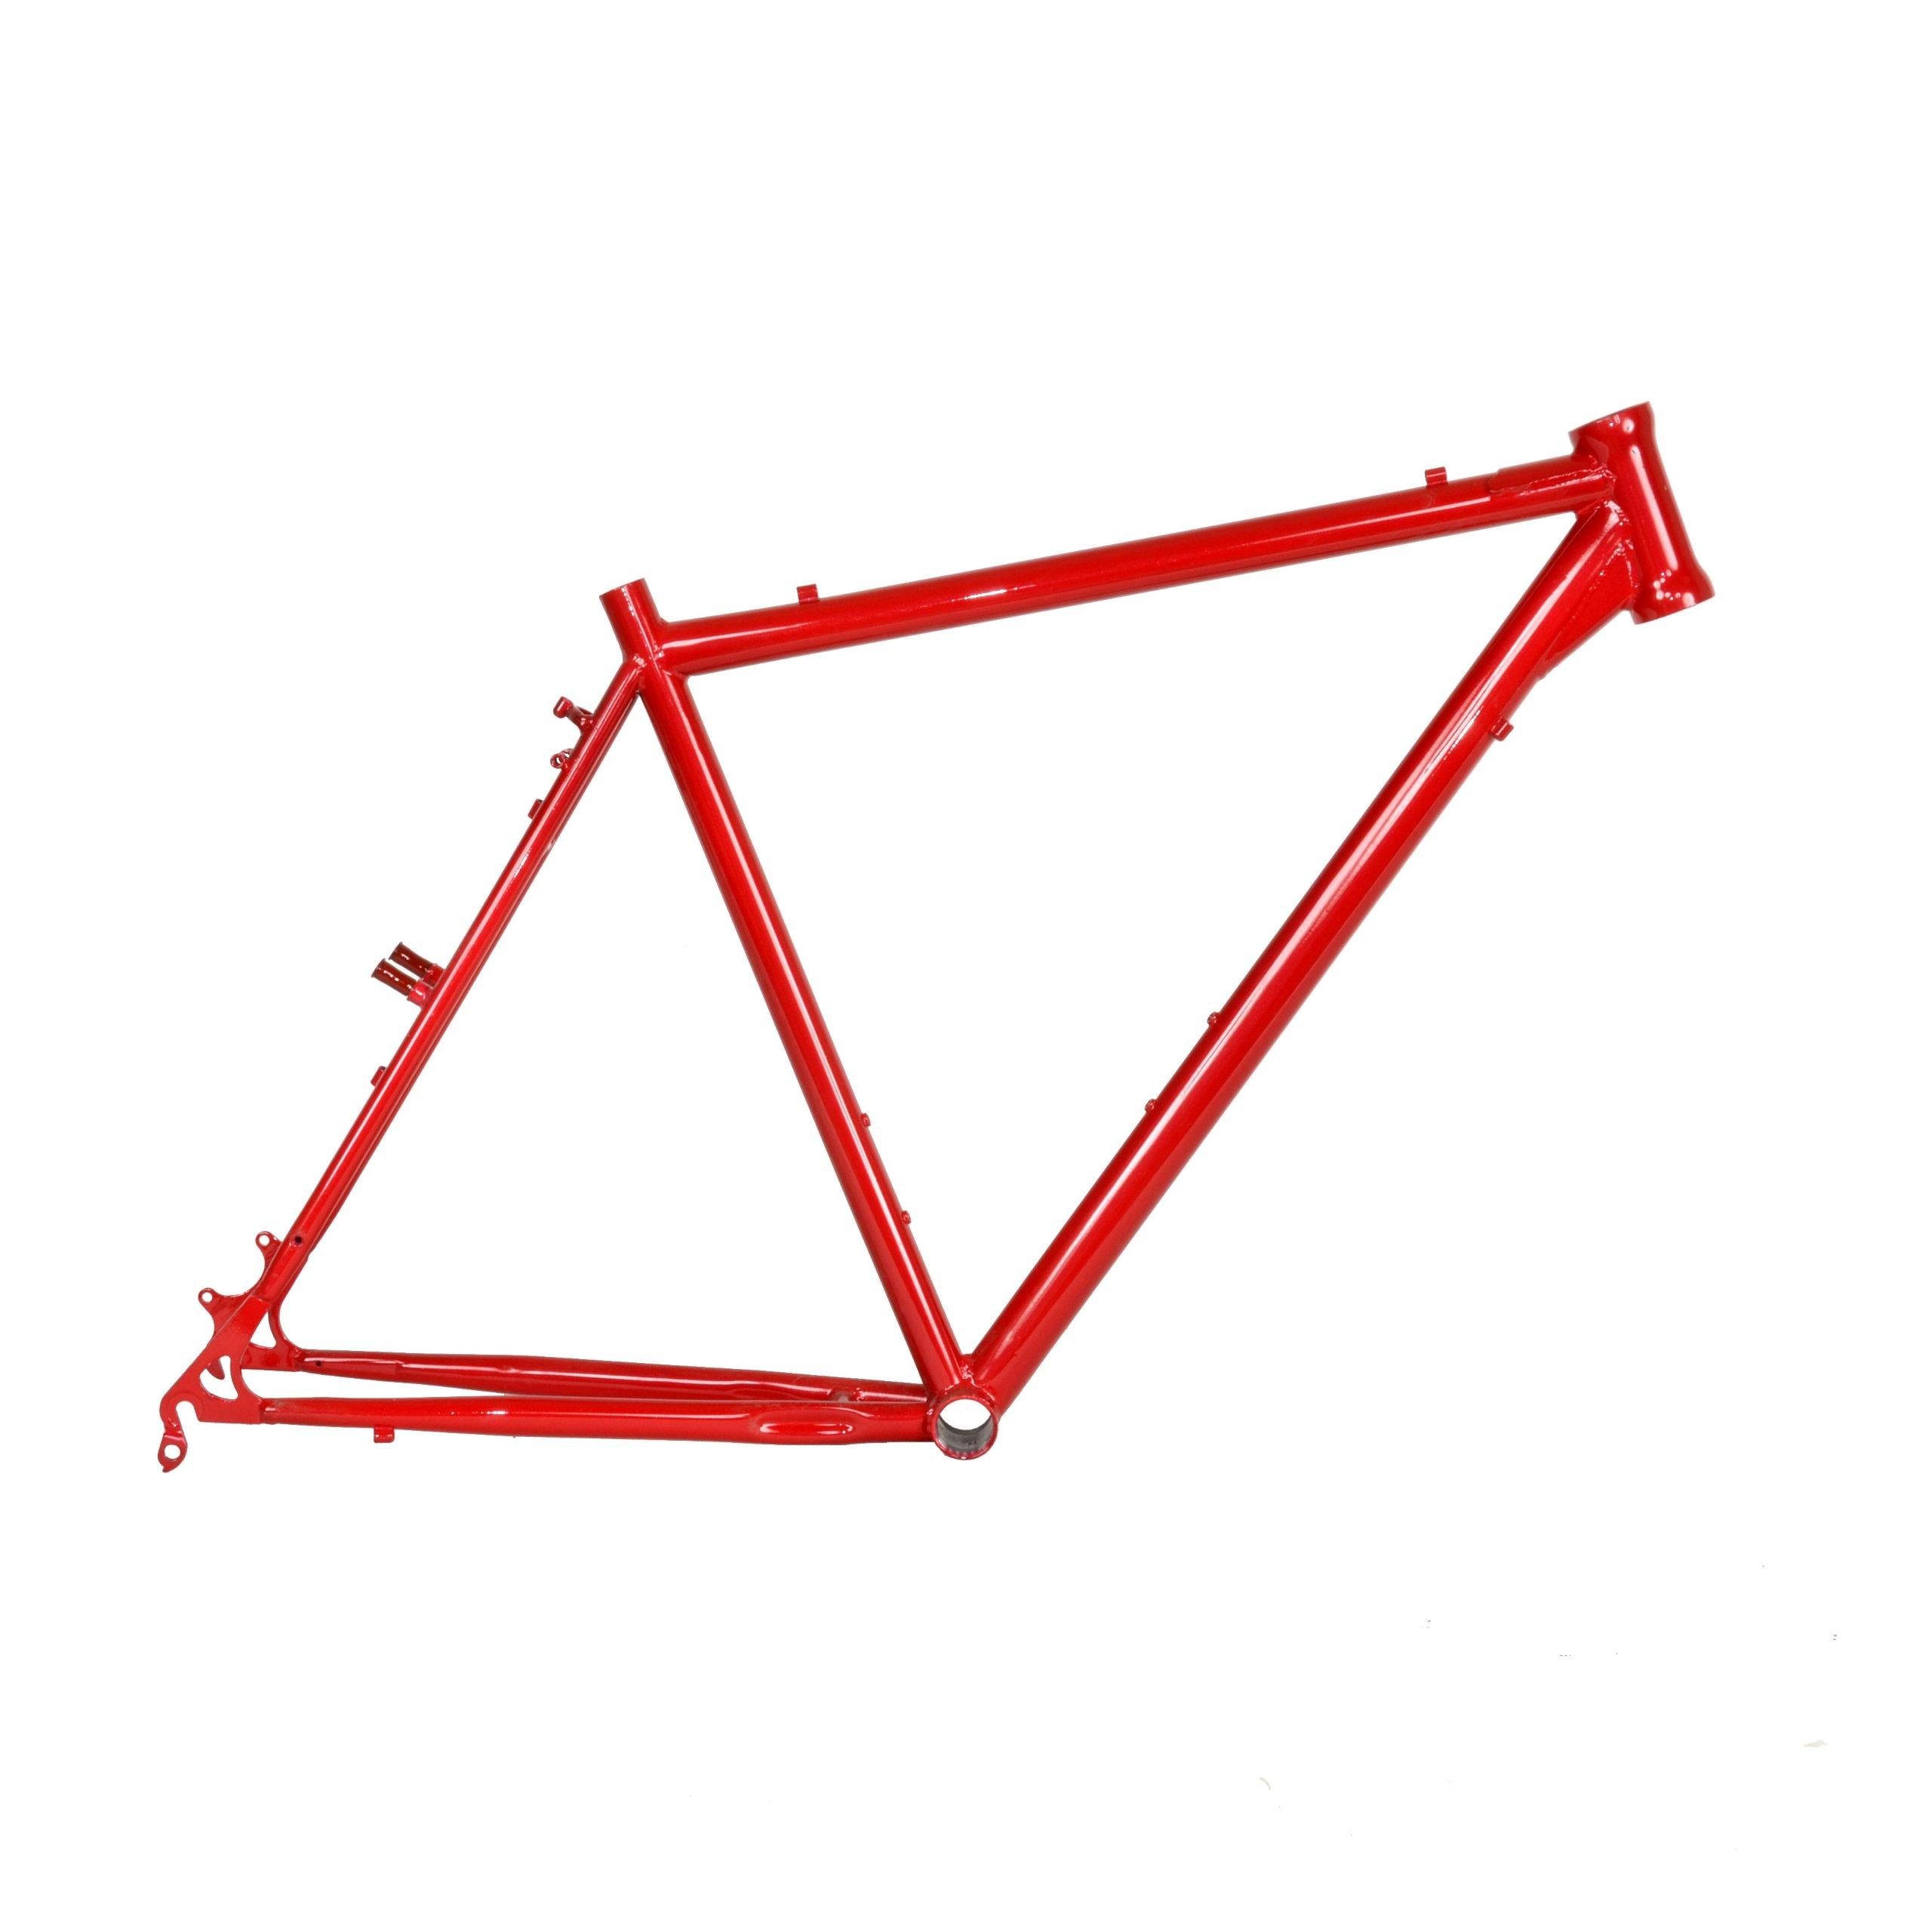 Cycle Force Cro-mo Cyclocross Frame, 46cm/X-Small, Red